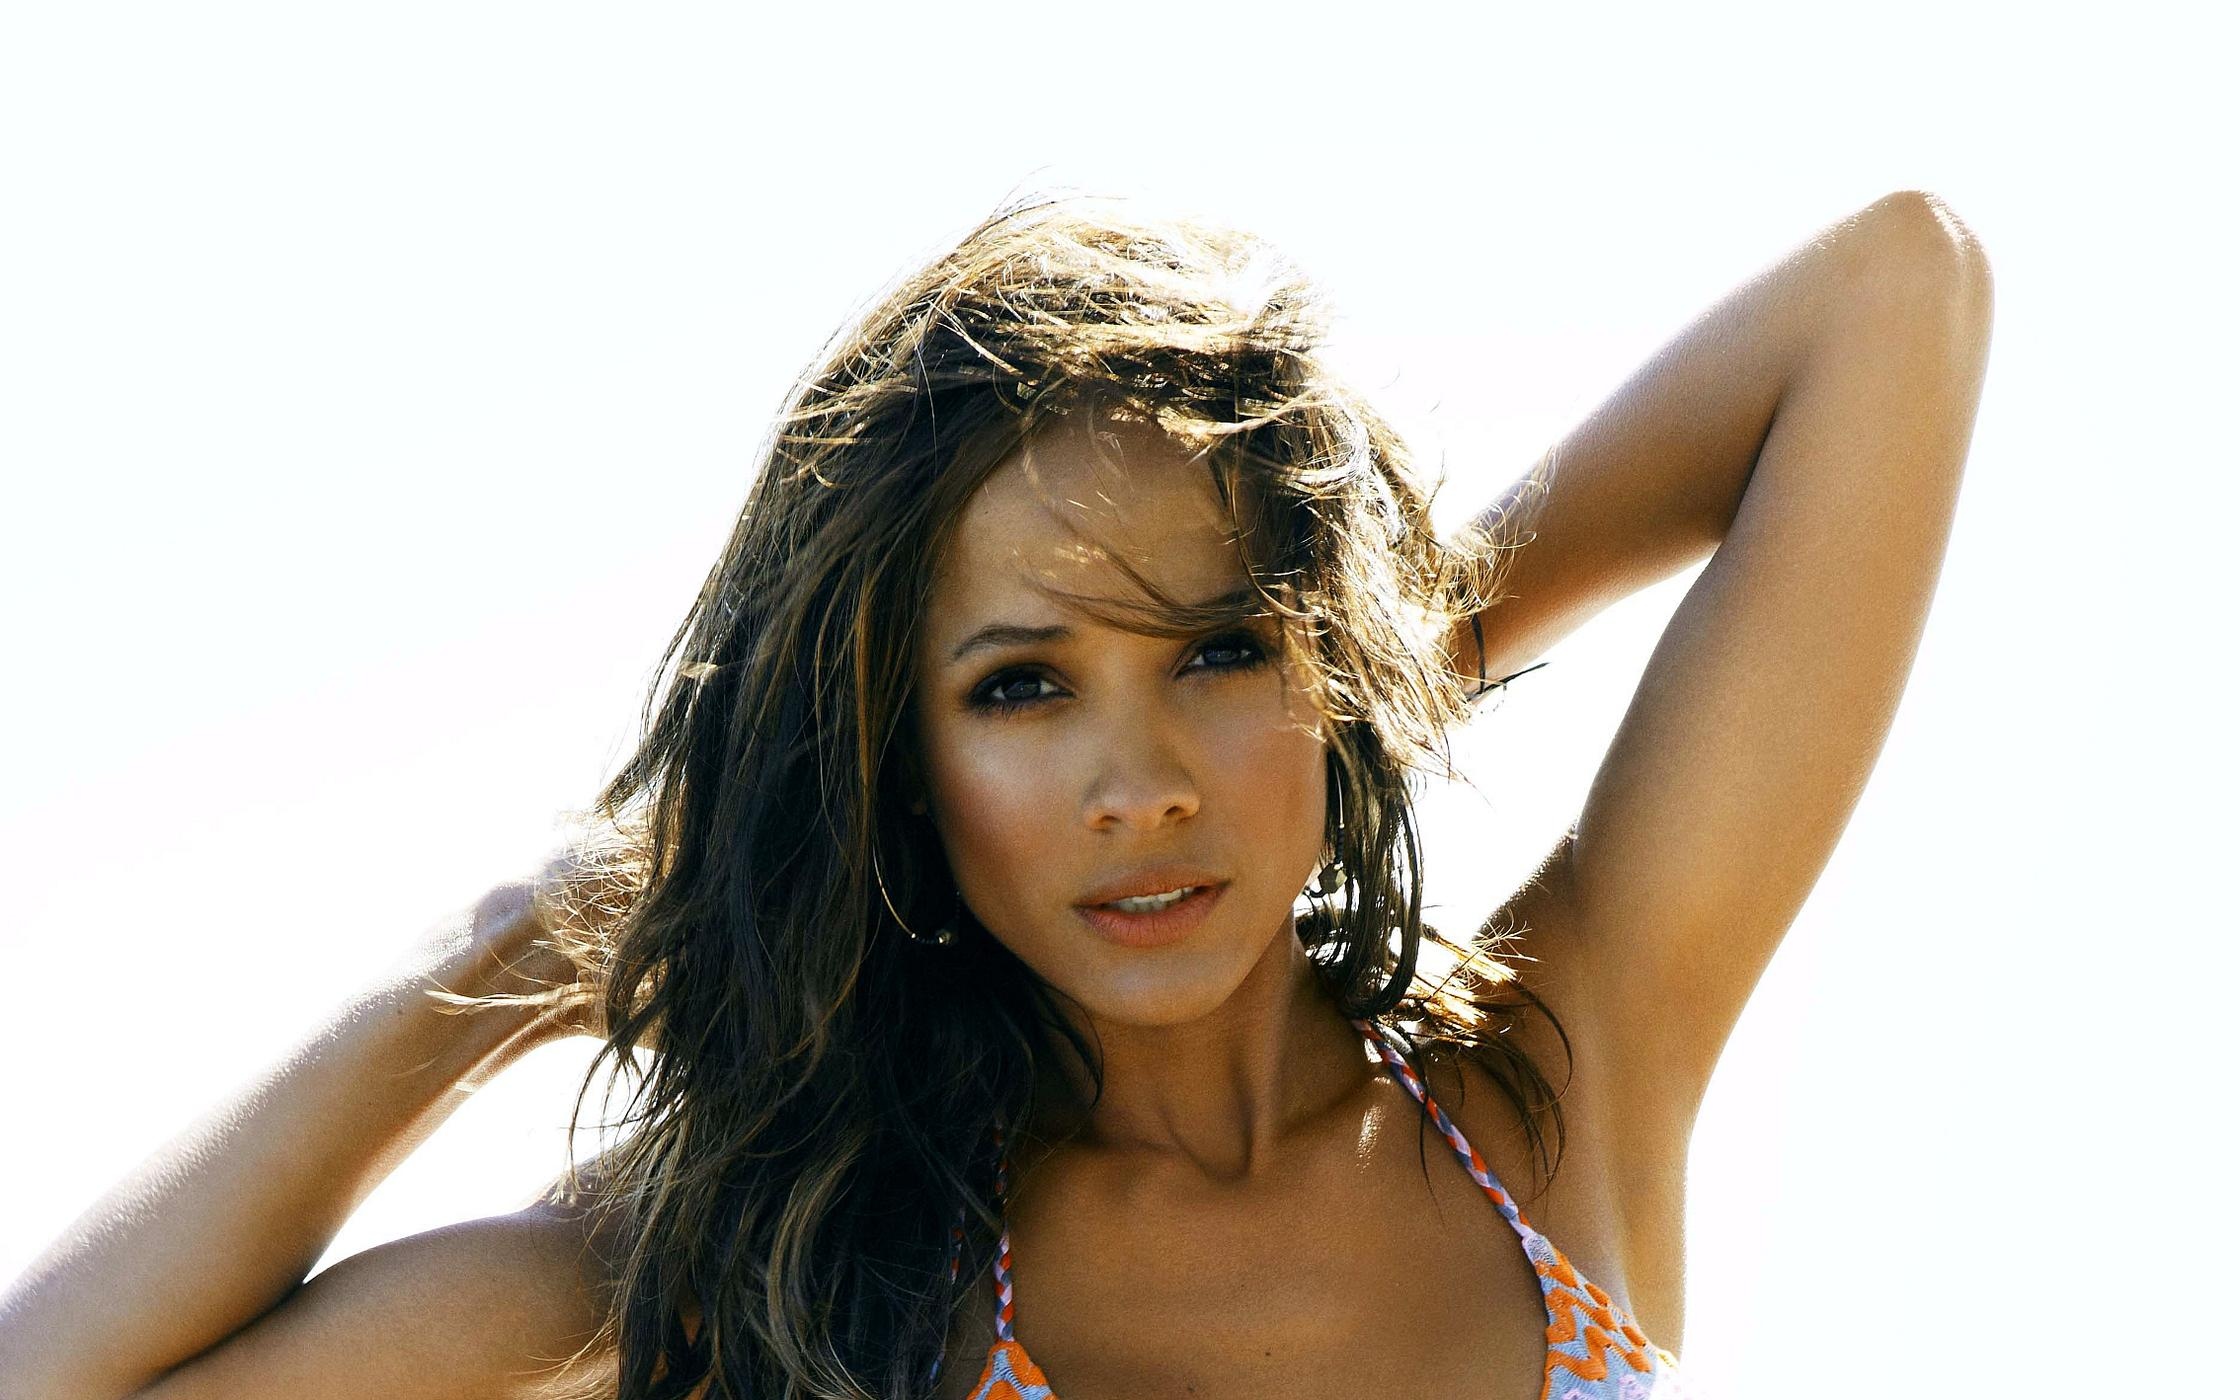 hot dania ramirez wallpaper 53094